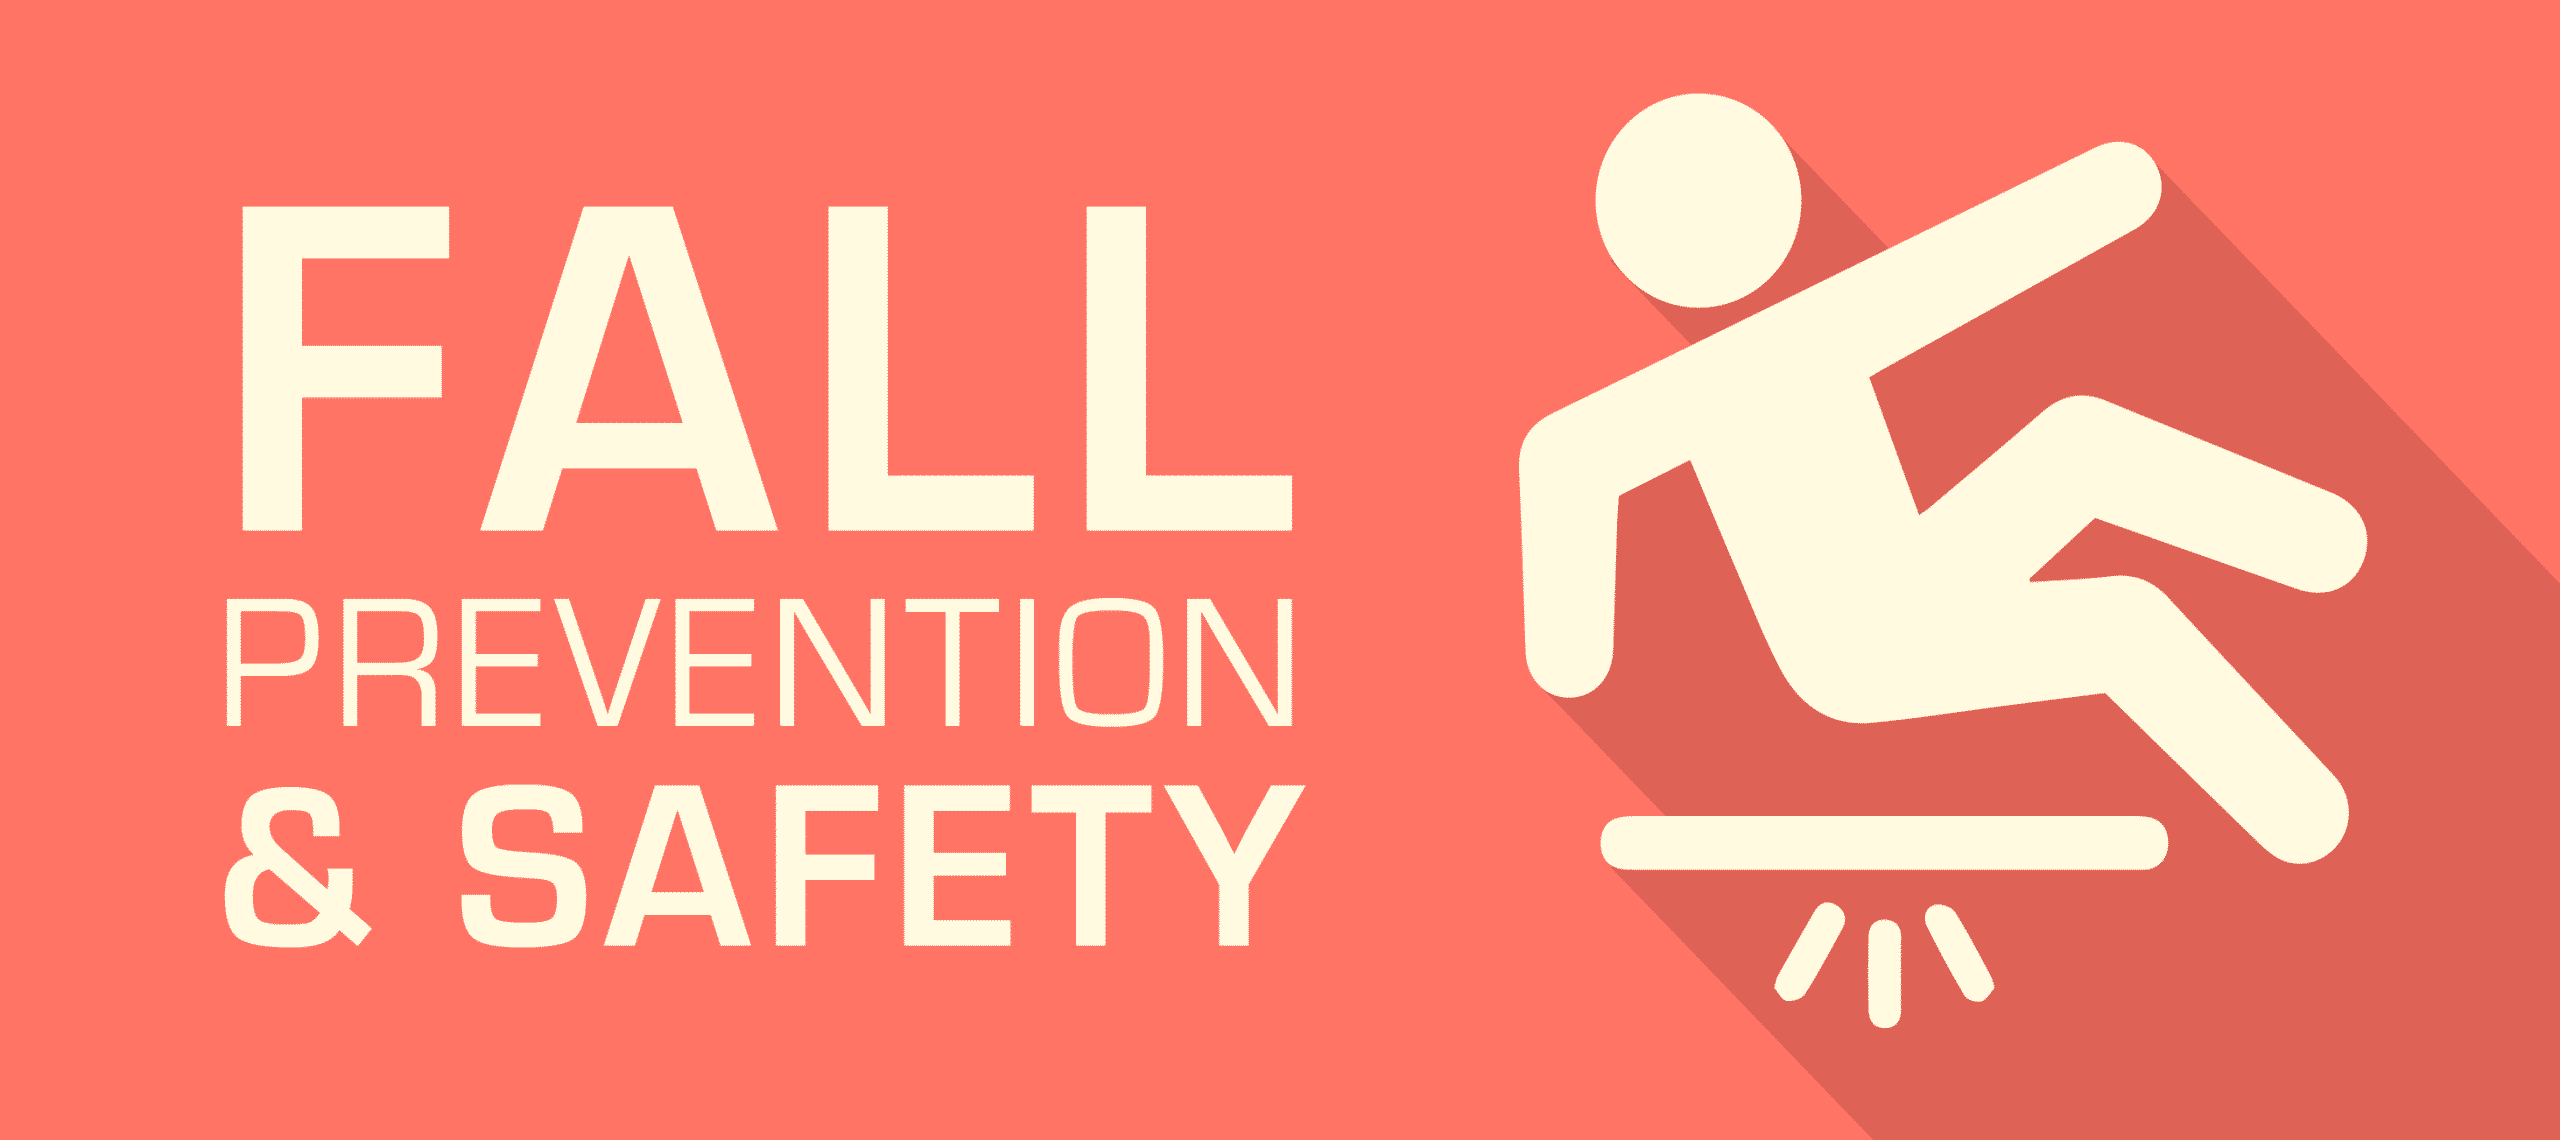 Fall Prevention - Alerta